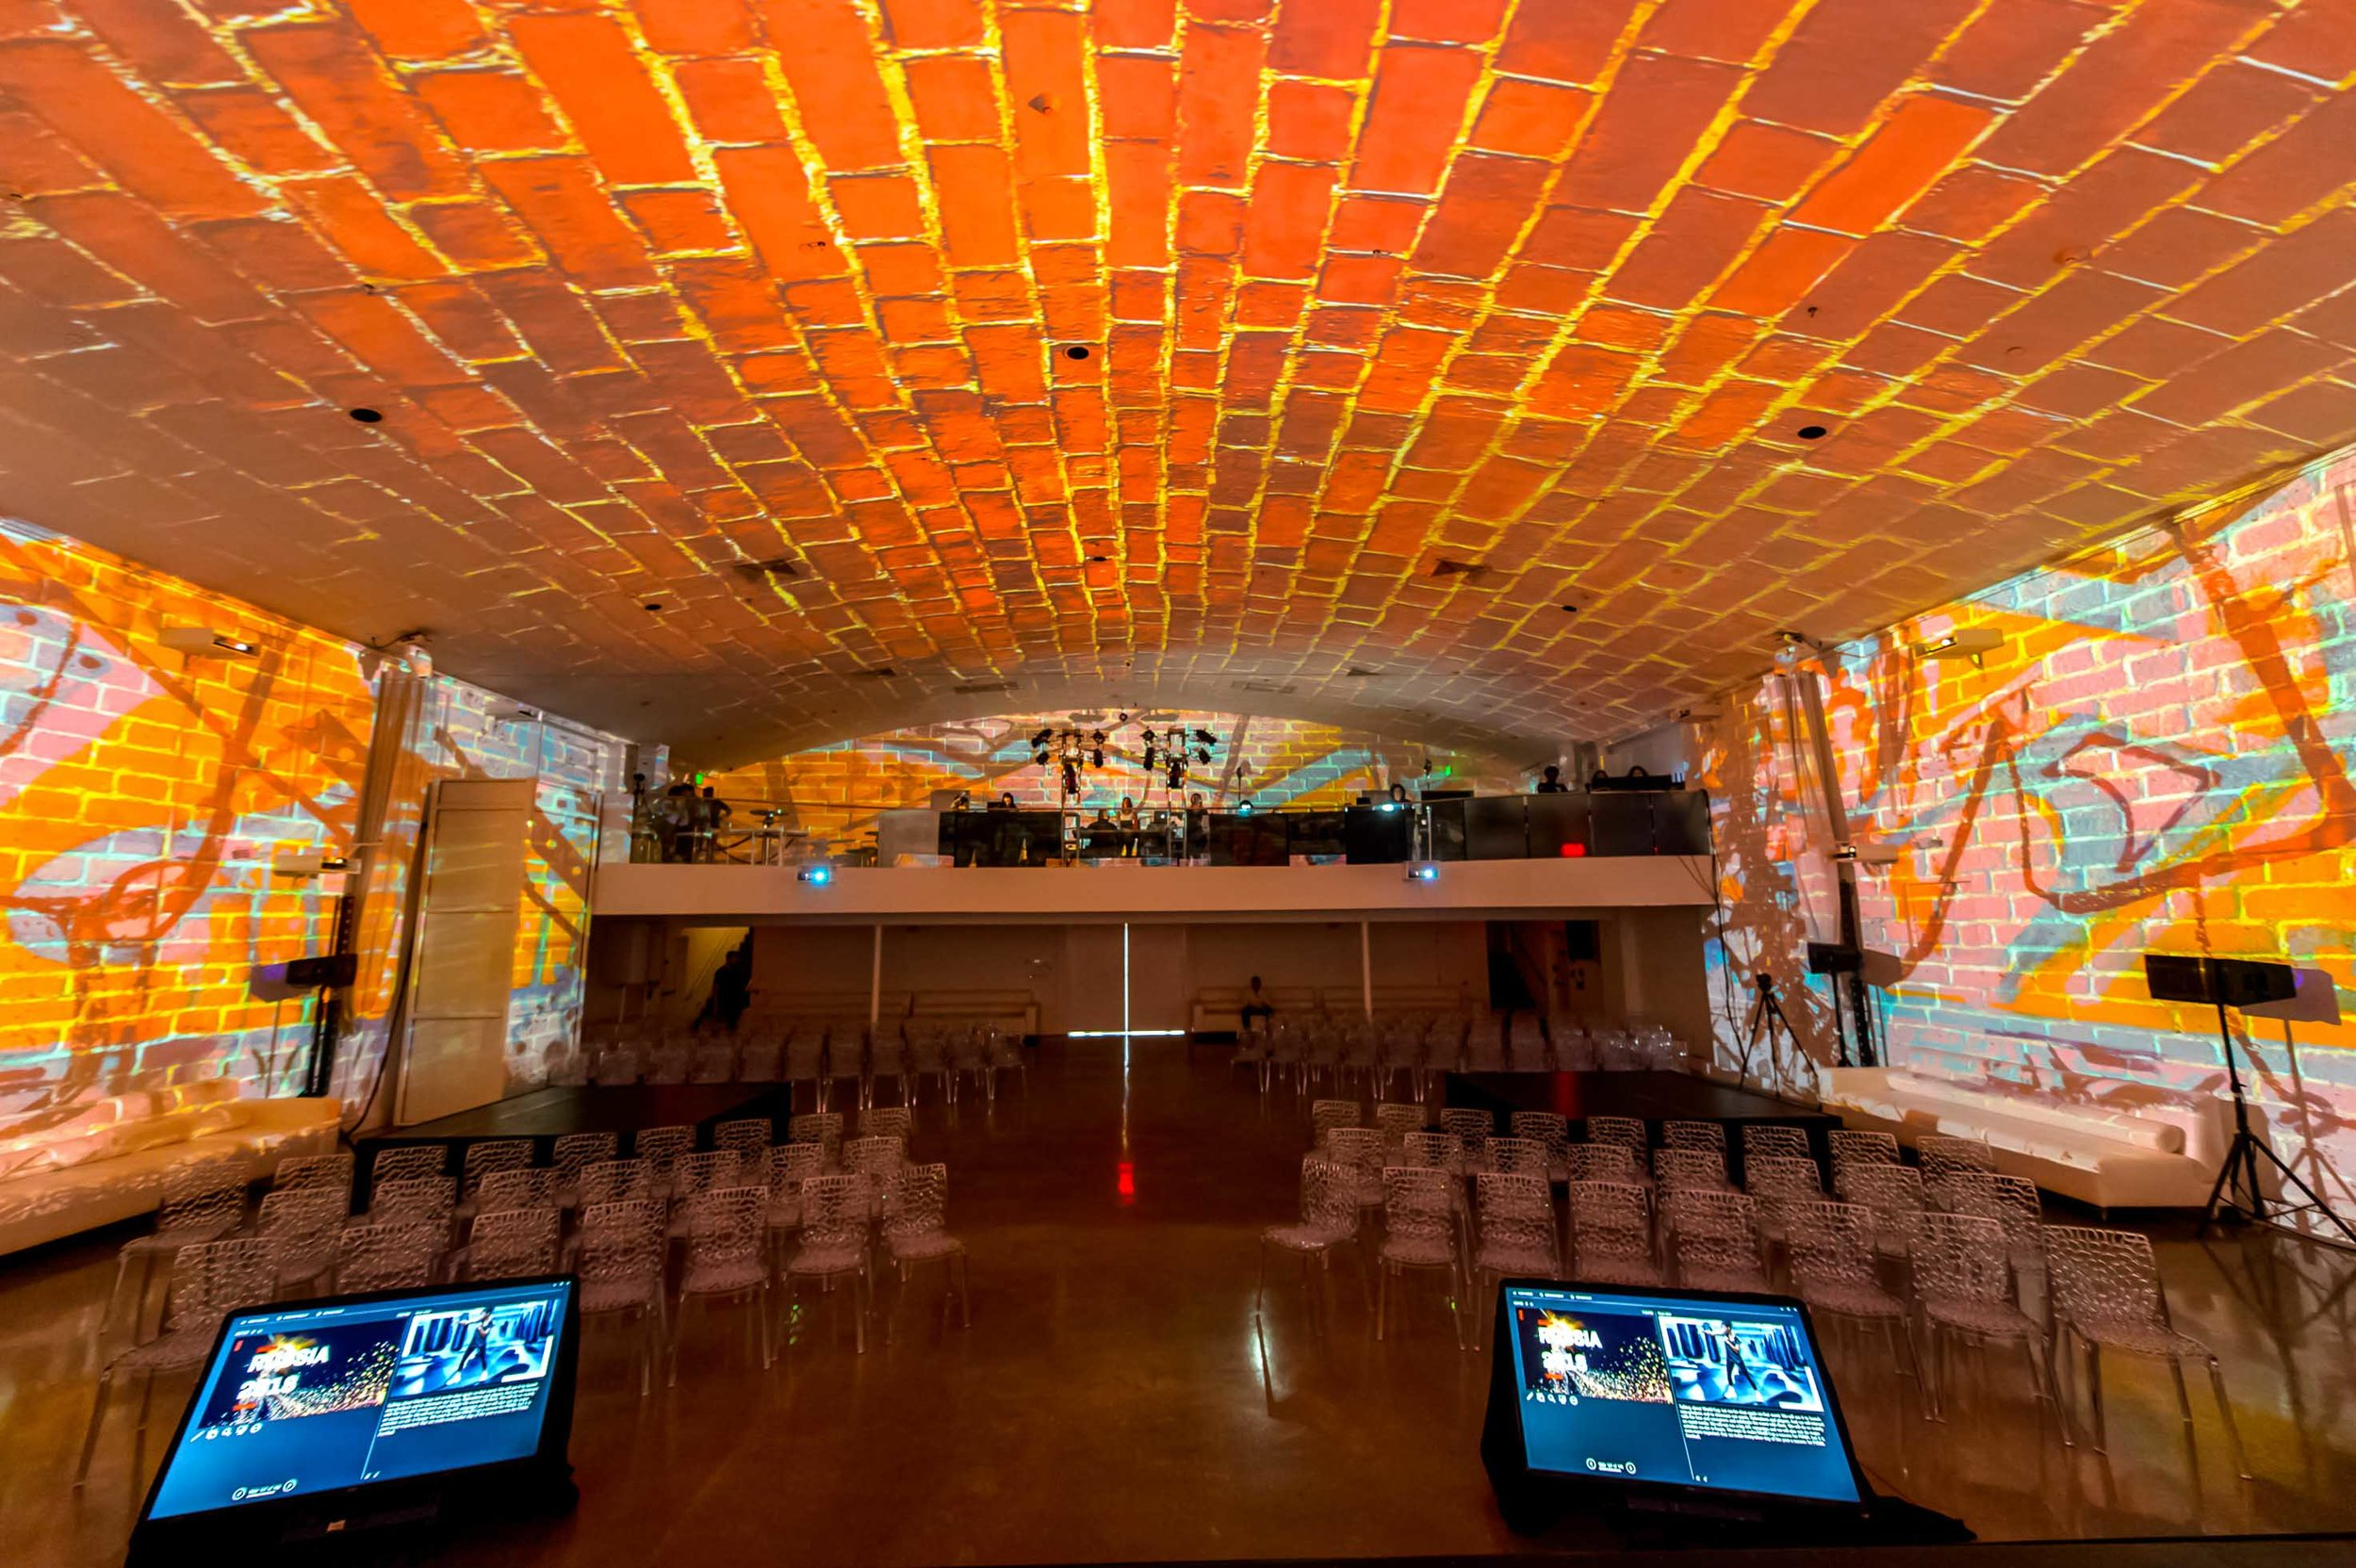 the_temple_house_events_projection_mapping_page-7.jpg